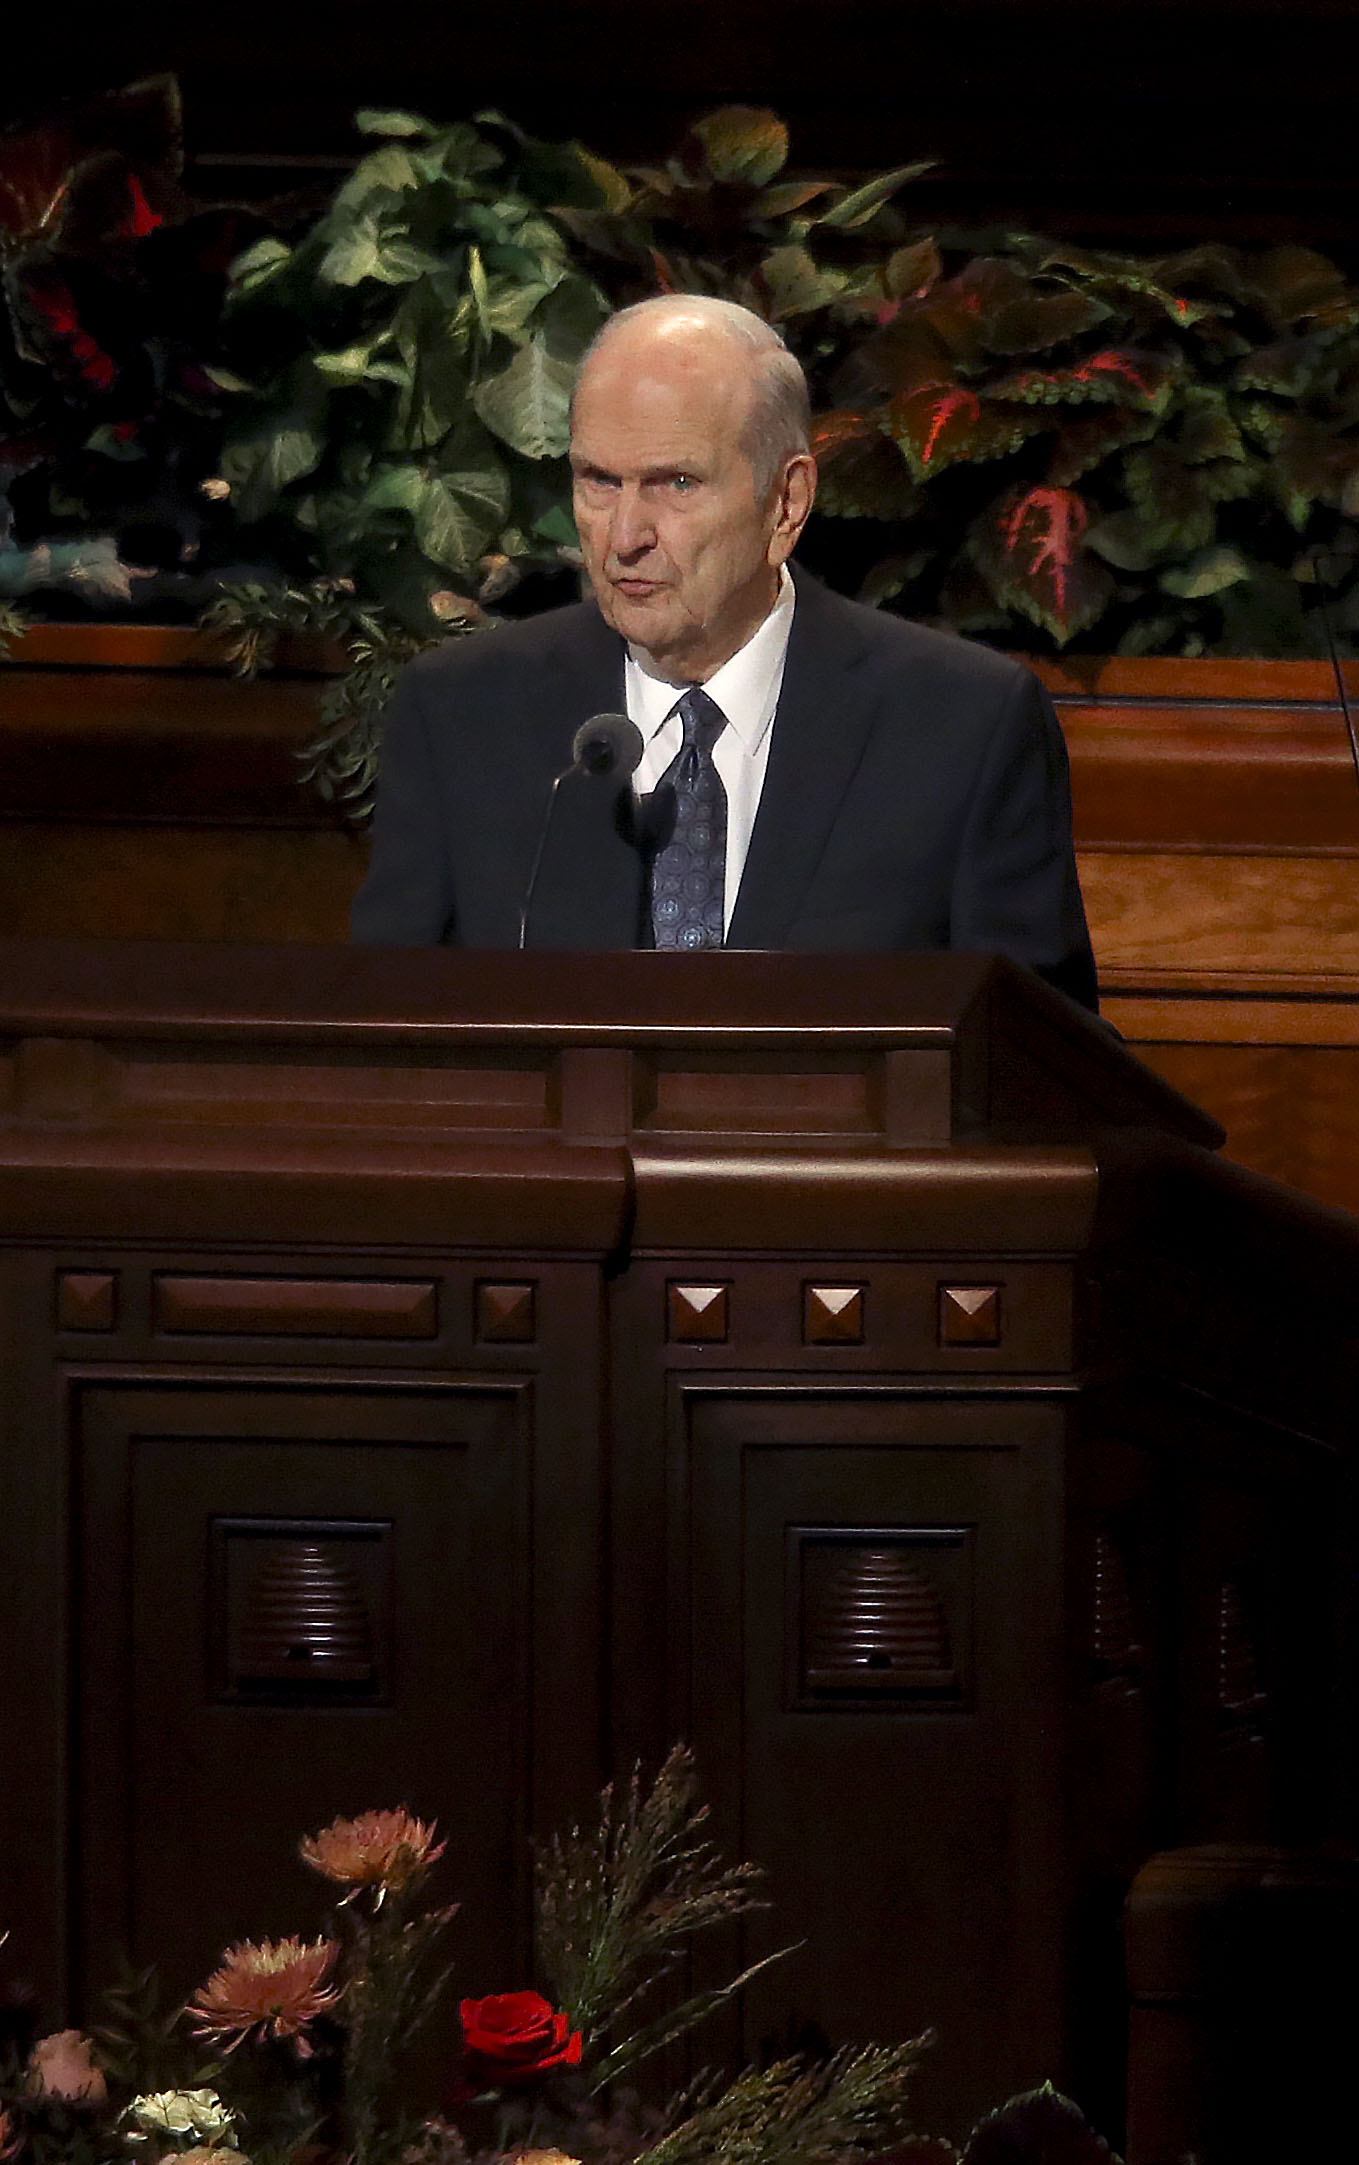 President Russell M. Nelson, of The Church of Jesus Christ of Latter-day Saints, speaks during the Sunday afternoon session of the 189th Semiannual General Conference of The Church of Jesus Christ of Latter-day Saints in Salt Lake City on Sunday, Oct. 6, 2019.